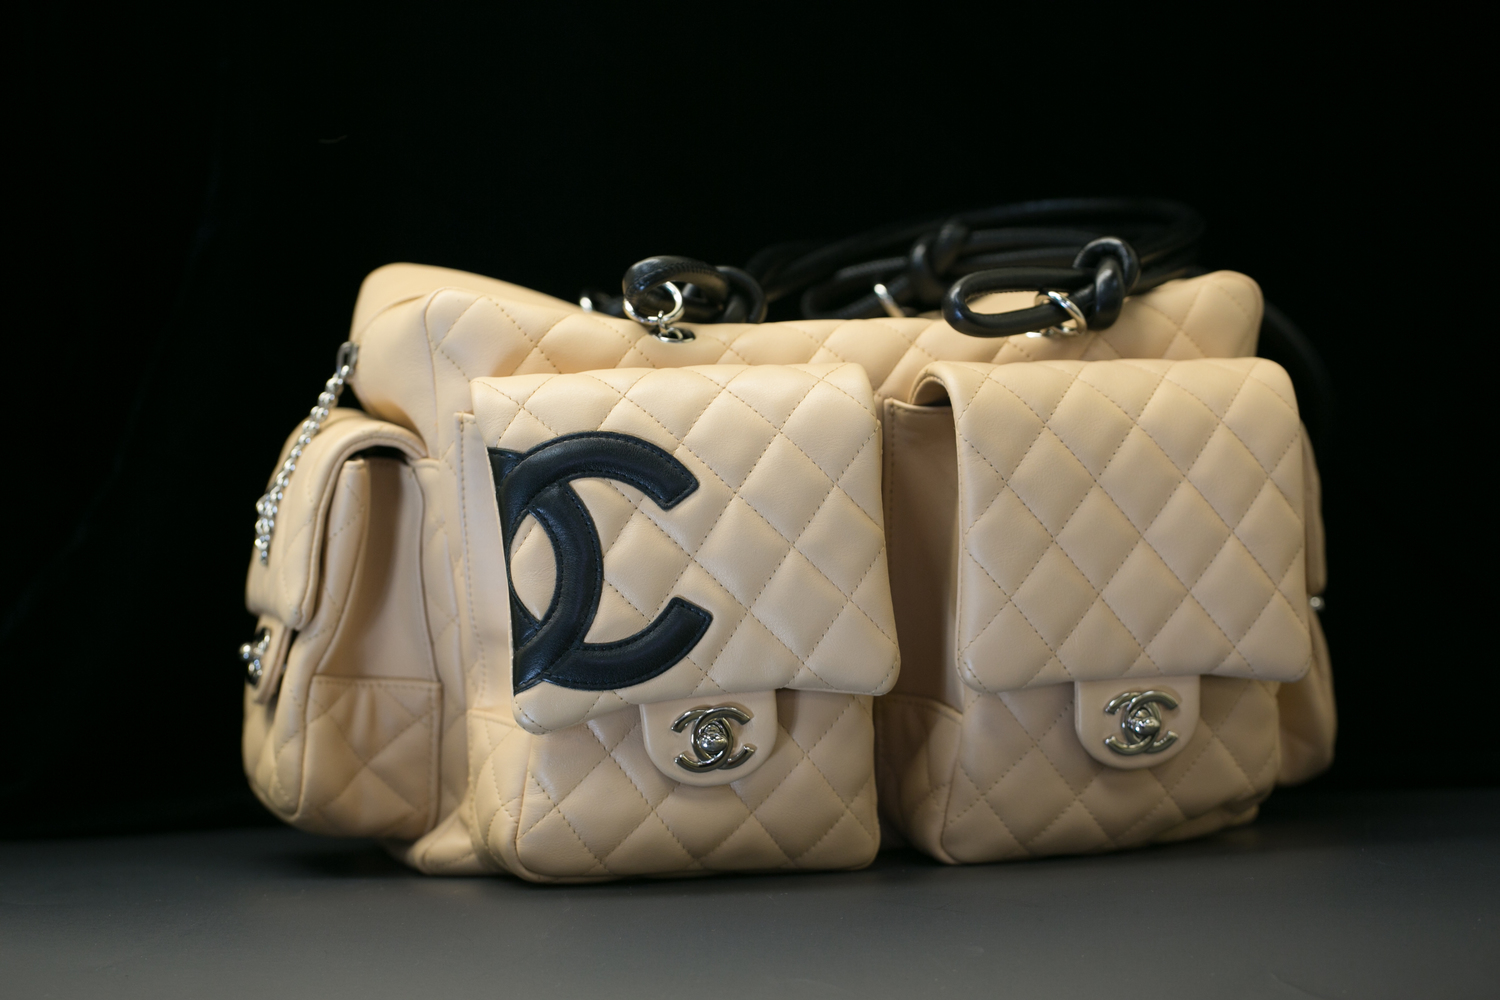 c3f62cc0fd20 Chanel Beige/Black Quilted Ligne Cambon Reporter Bag — New York Diamond  Center